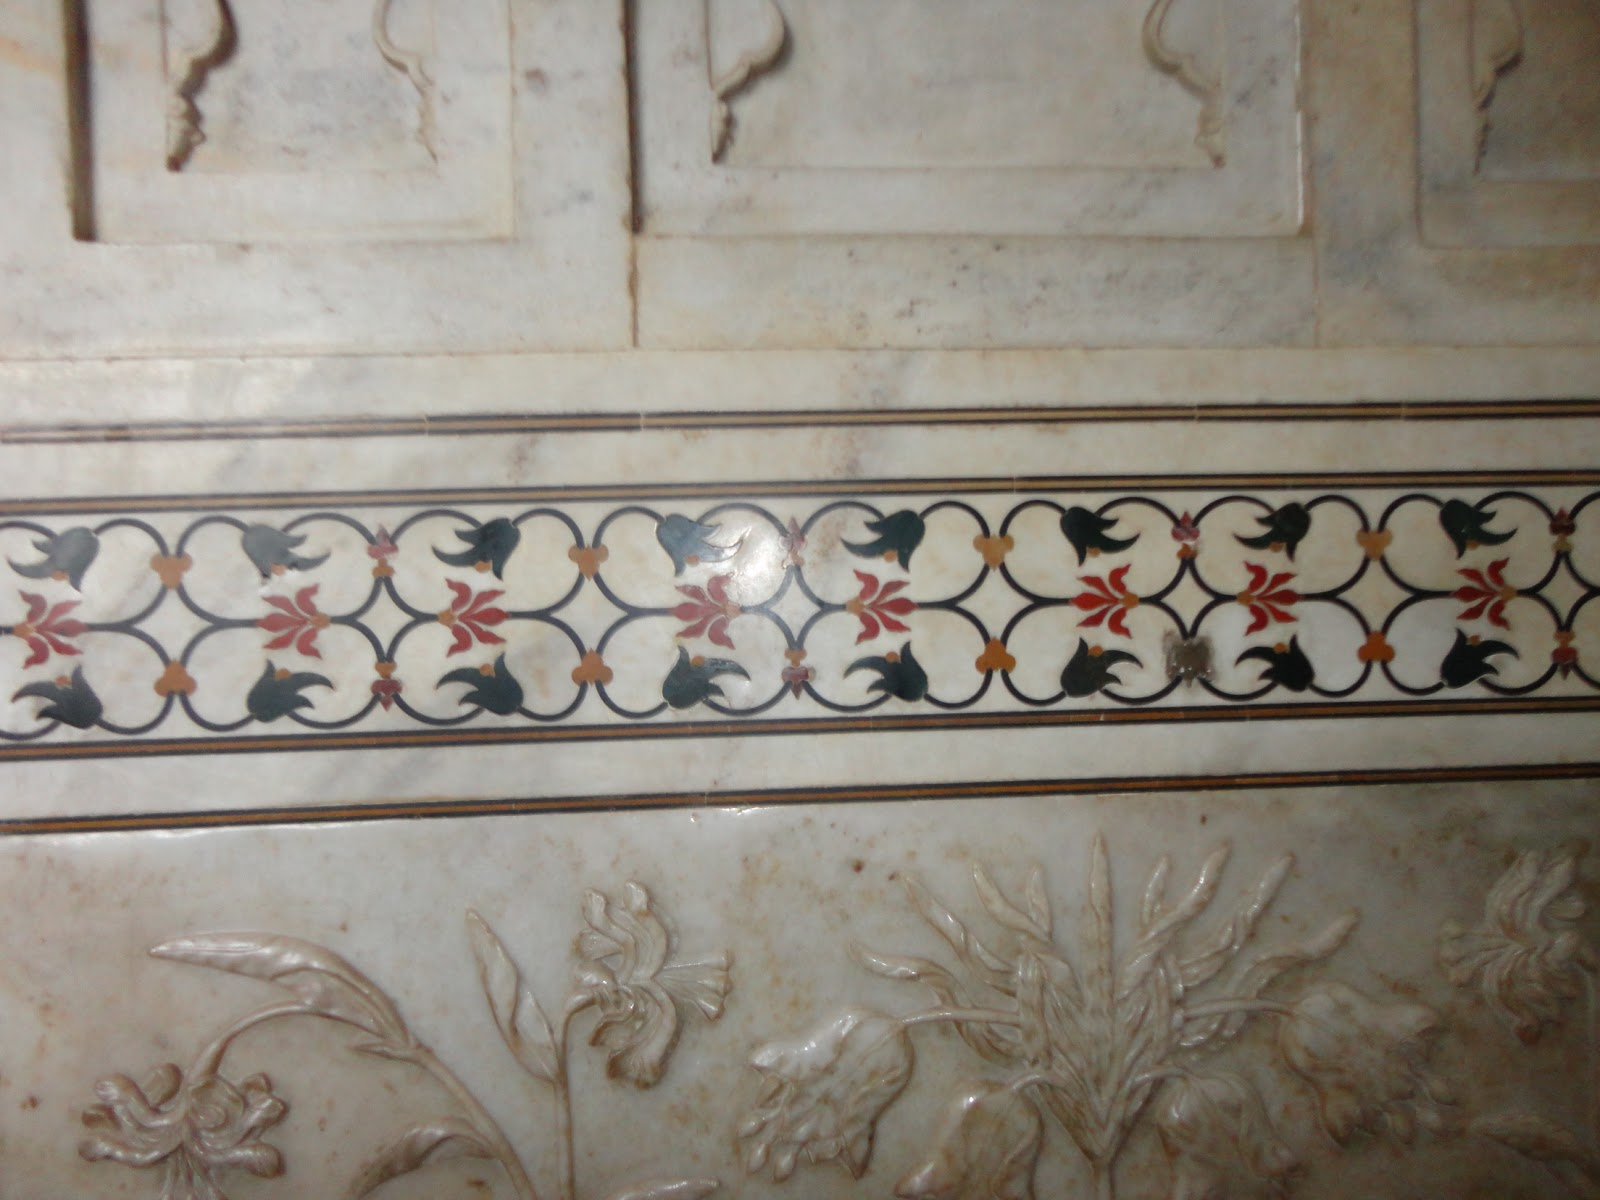 Semi-Precious stones inlaid into marble at The Taj Mahal